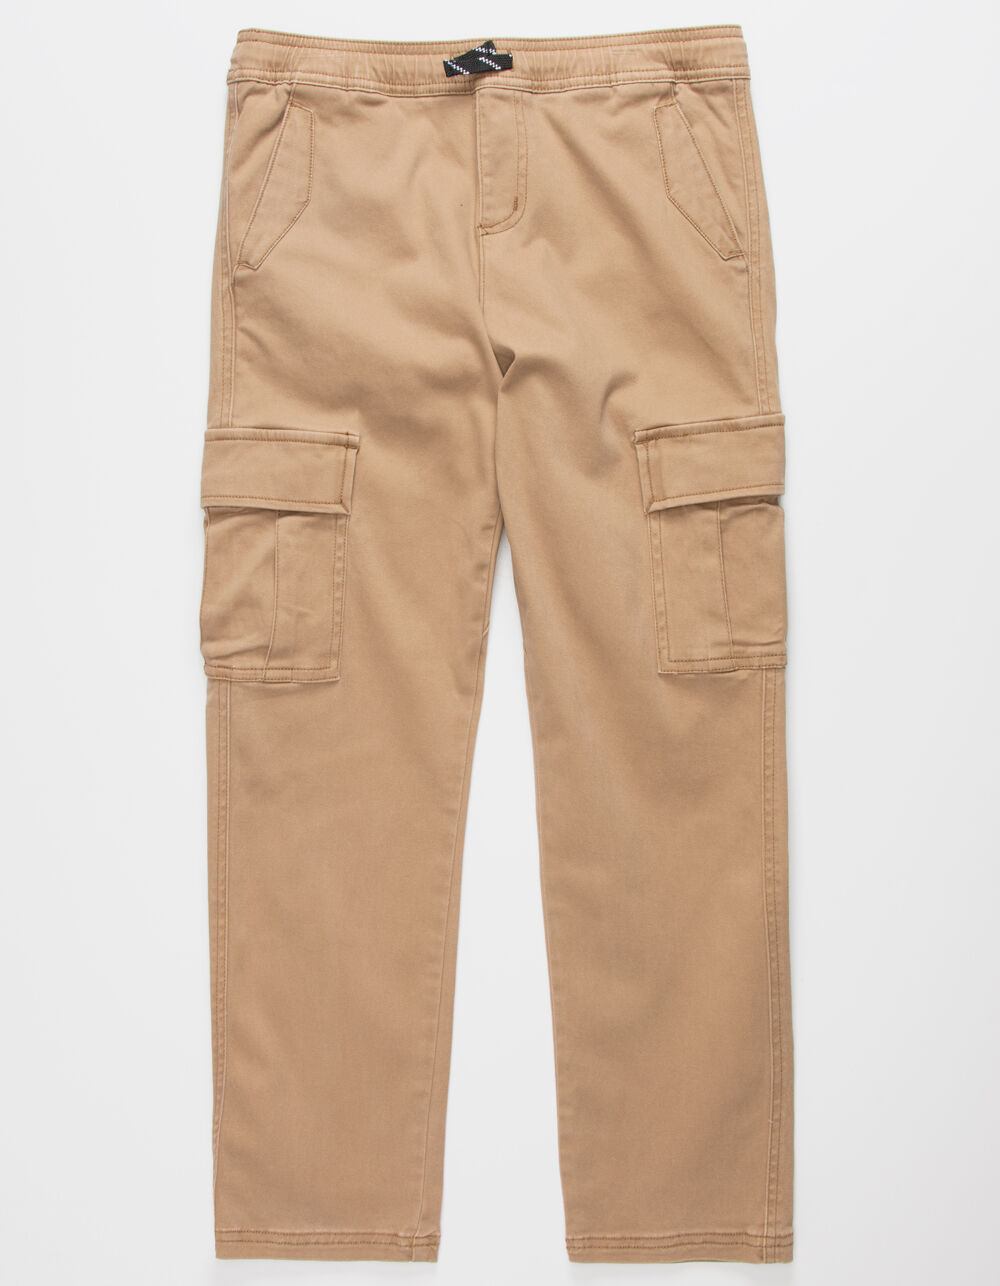 CHARLES AND A HALF Cargo Tan Boys Jogger Pants